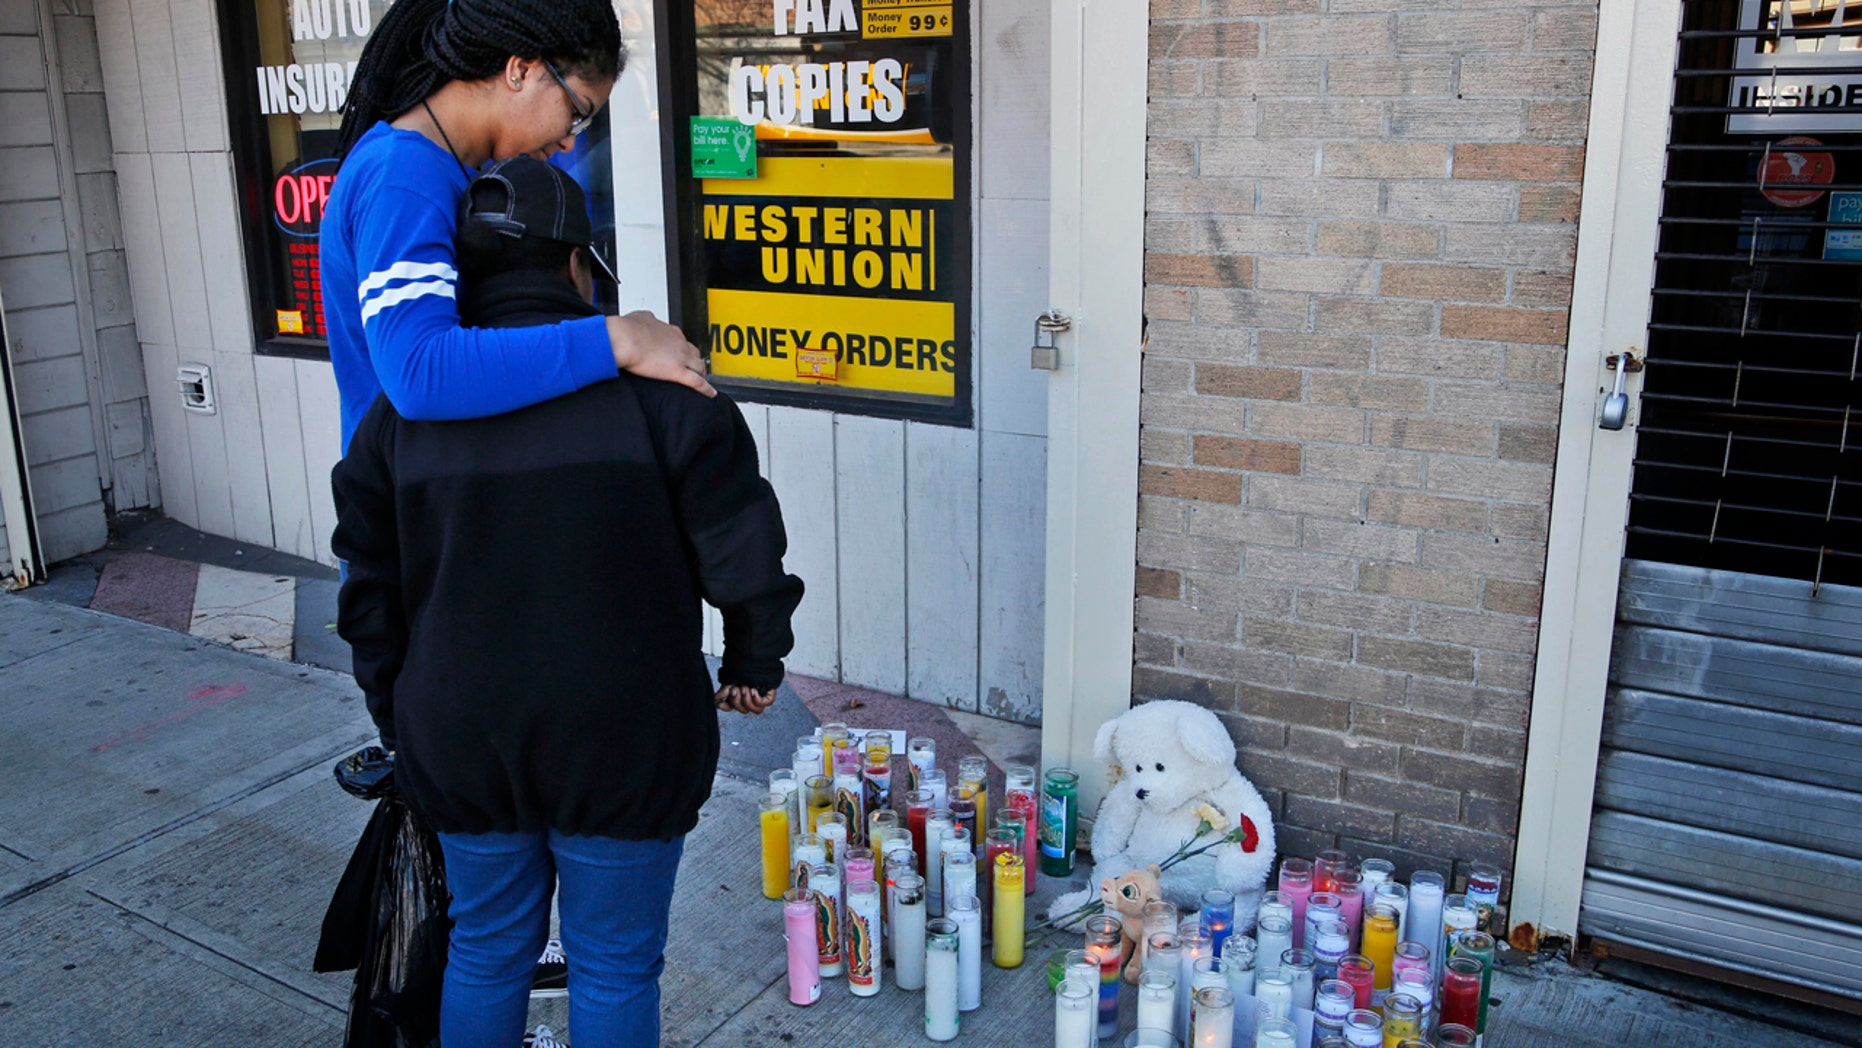 Anysia Manderson, left, comforts Amina Harris as they look at a makeshift memorial for those killed during a shooting at a Halloween party in Newburgh, N.Y., Monday, Oct. 31, 2016. Two were killed and several others injured in the weekend shooting. (AP Photo/Seth Wenig)